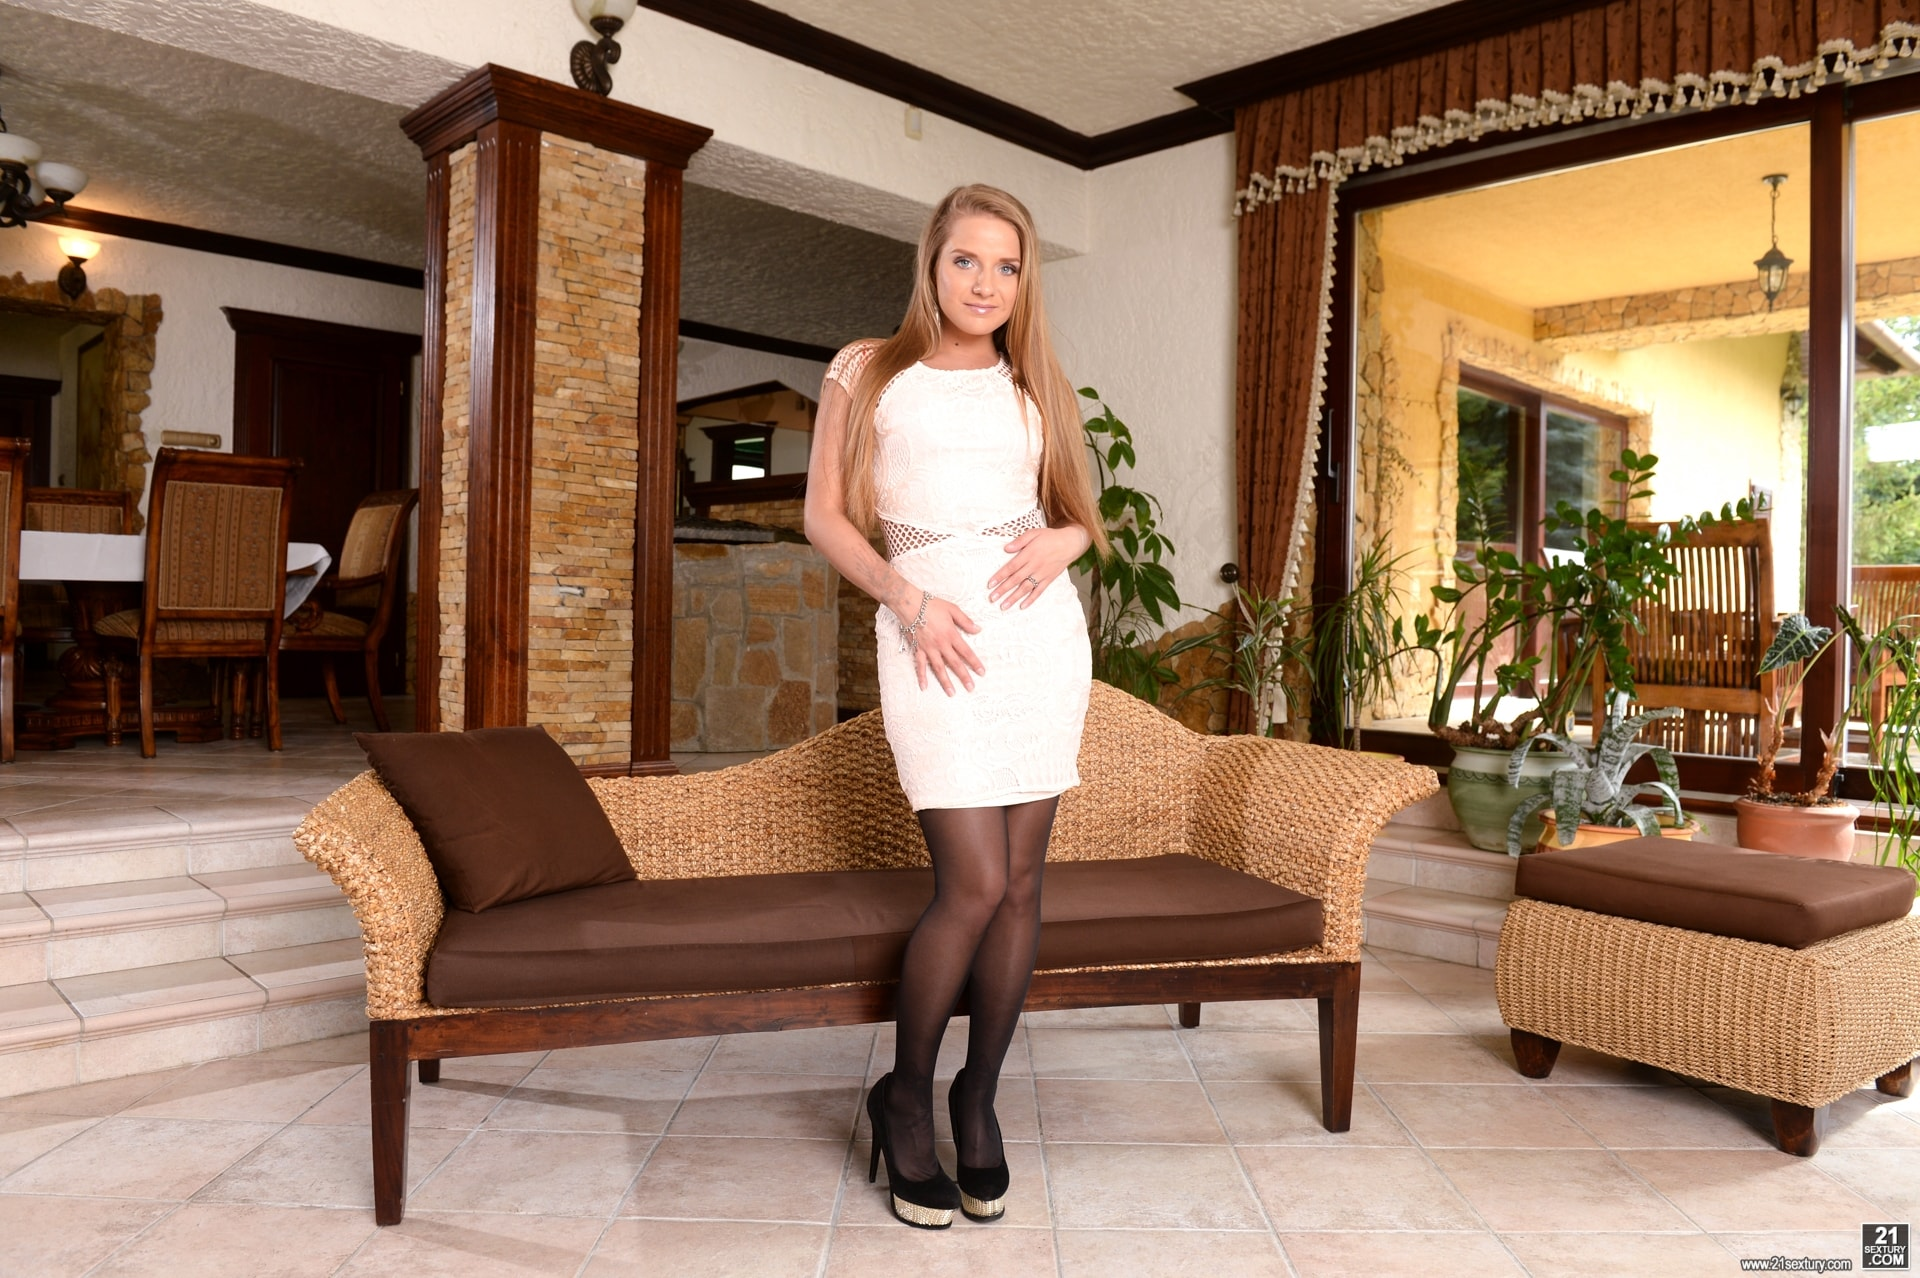 21Sextury 'Make Sure Your Wife's Out...Or Not!' starring Sofi Goldfinger (Photo 1)